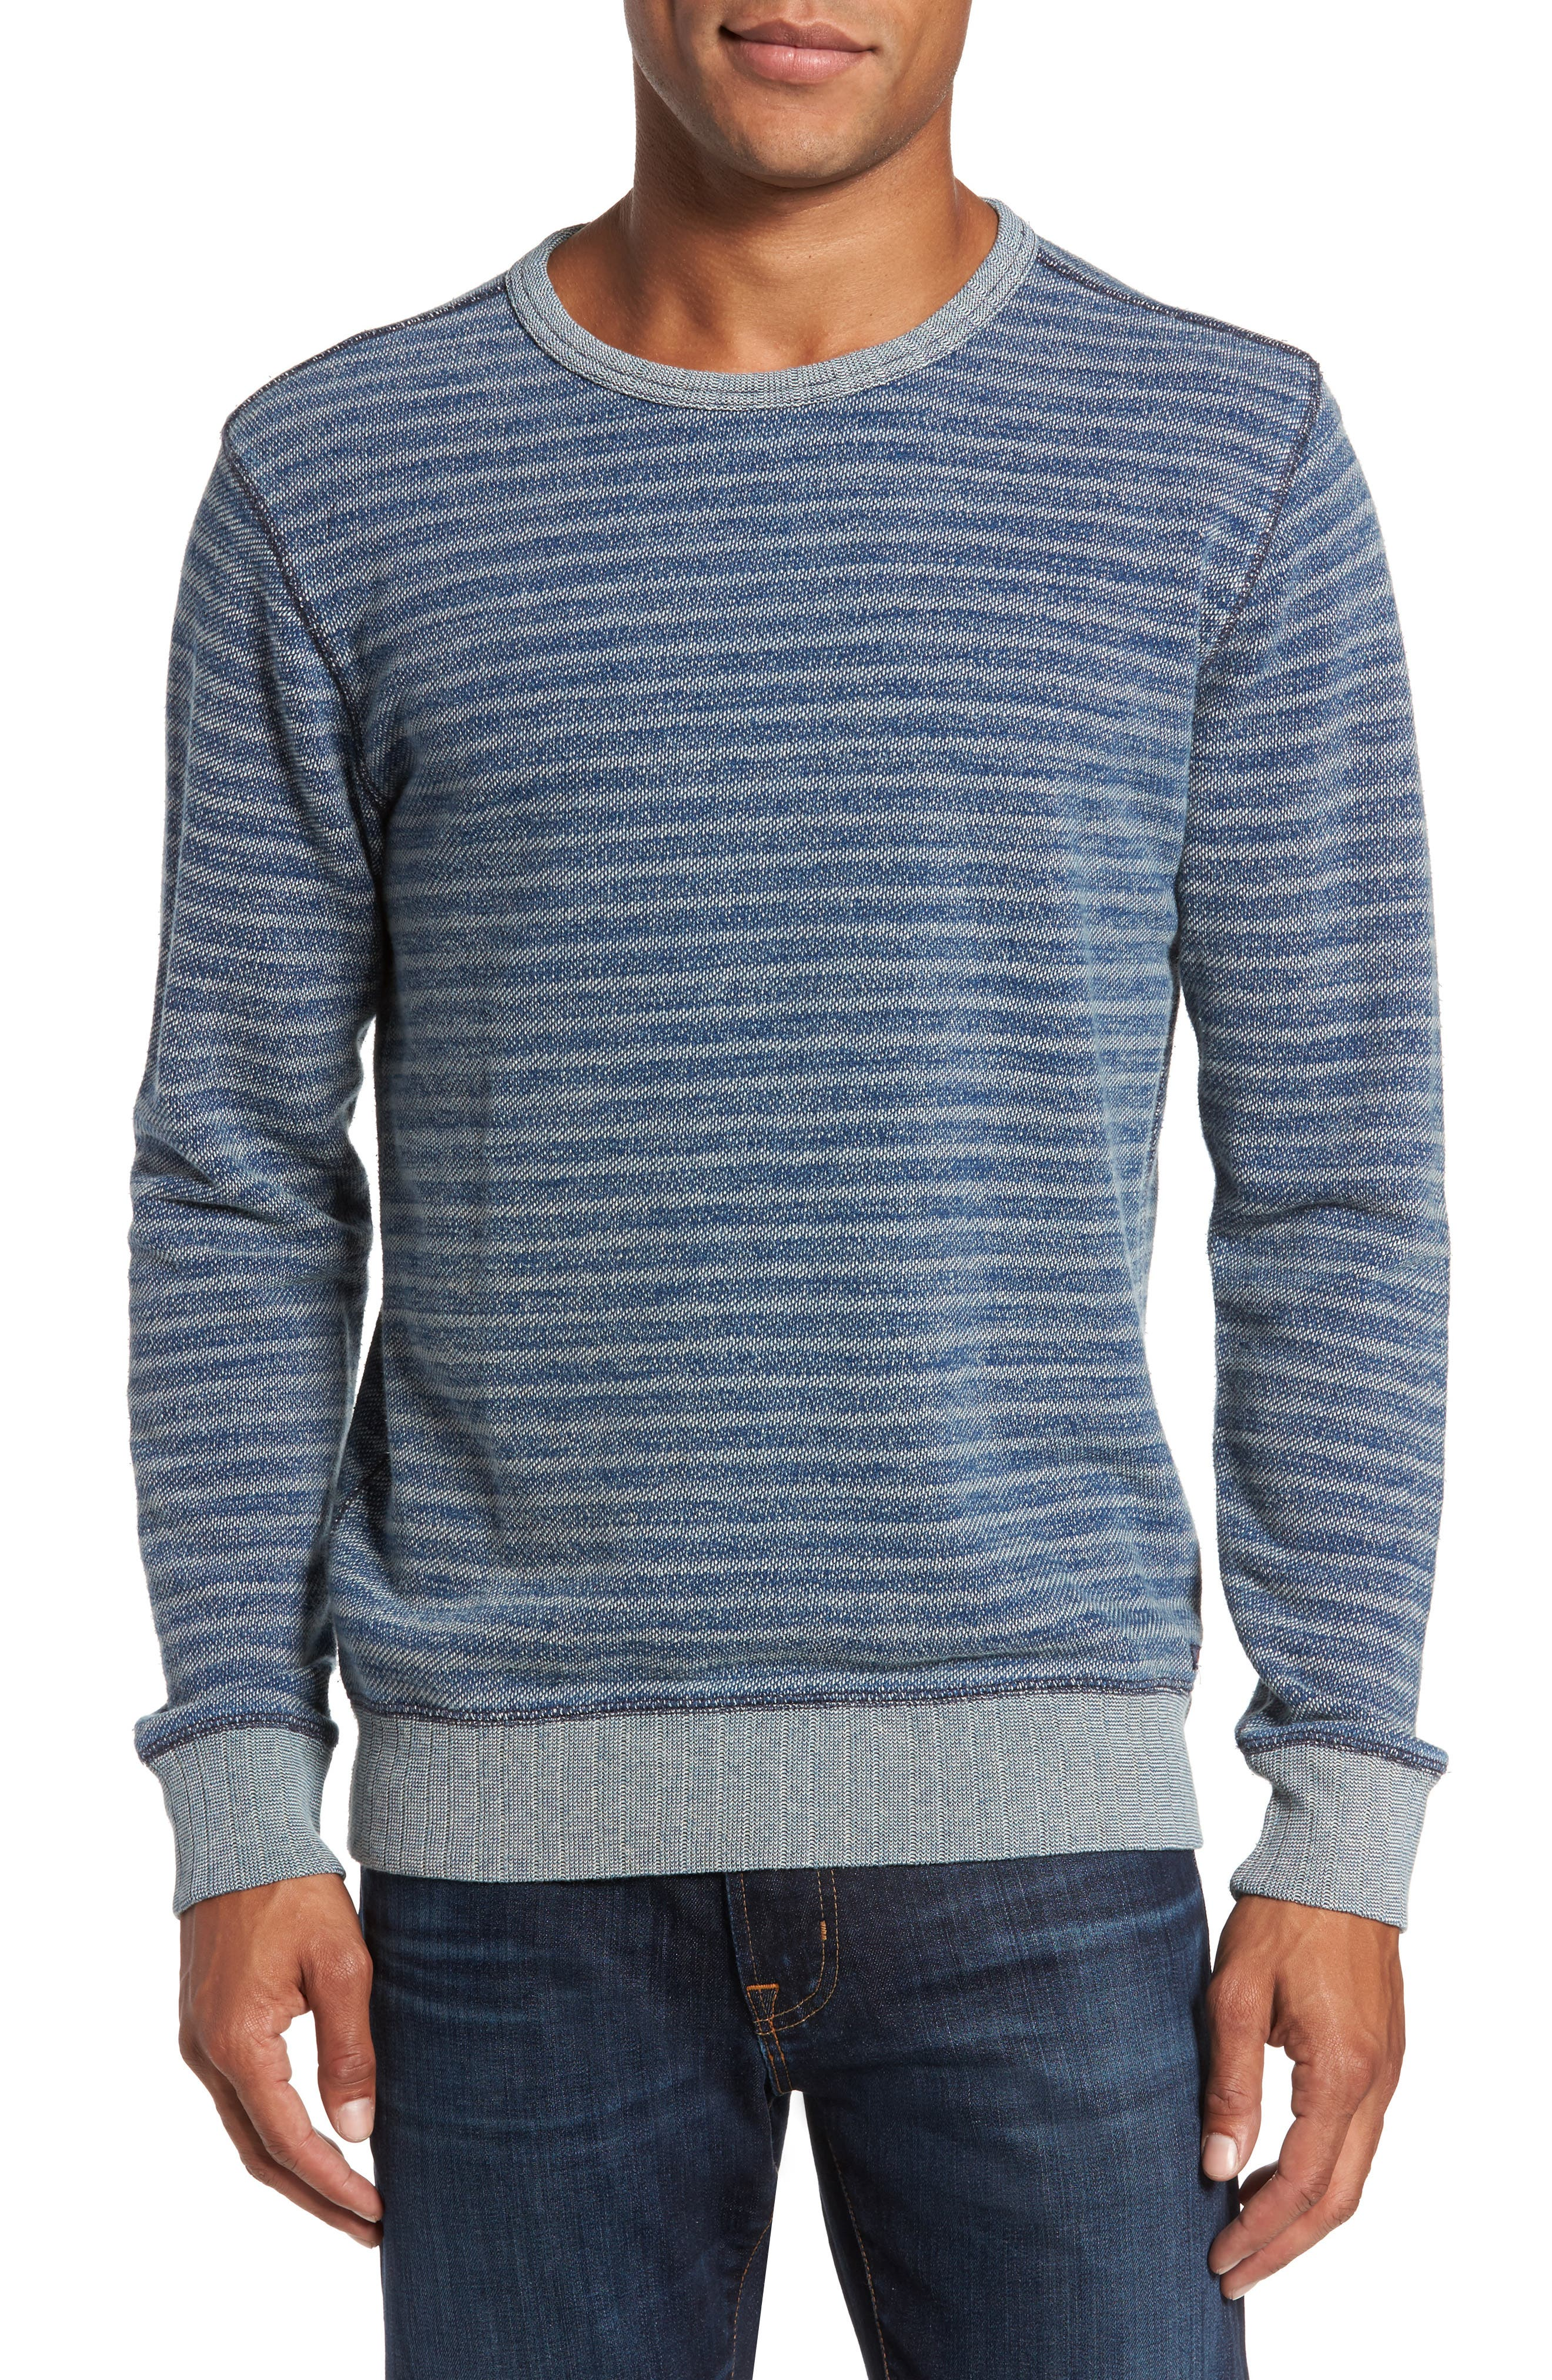 Stripe Crewneck Sweatshirt,                             Main thumbnail 1, color,                             402